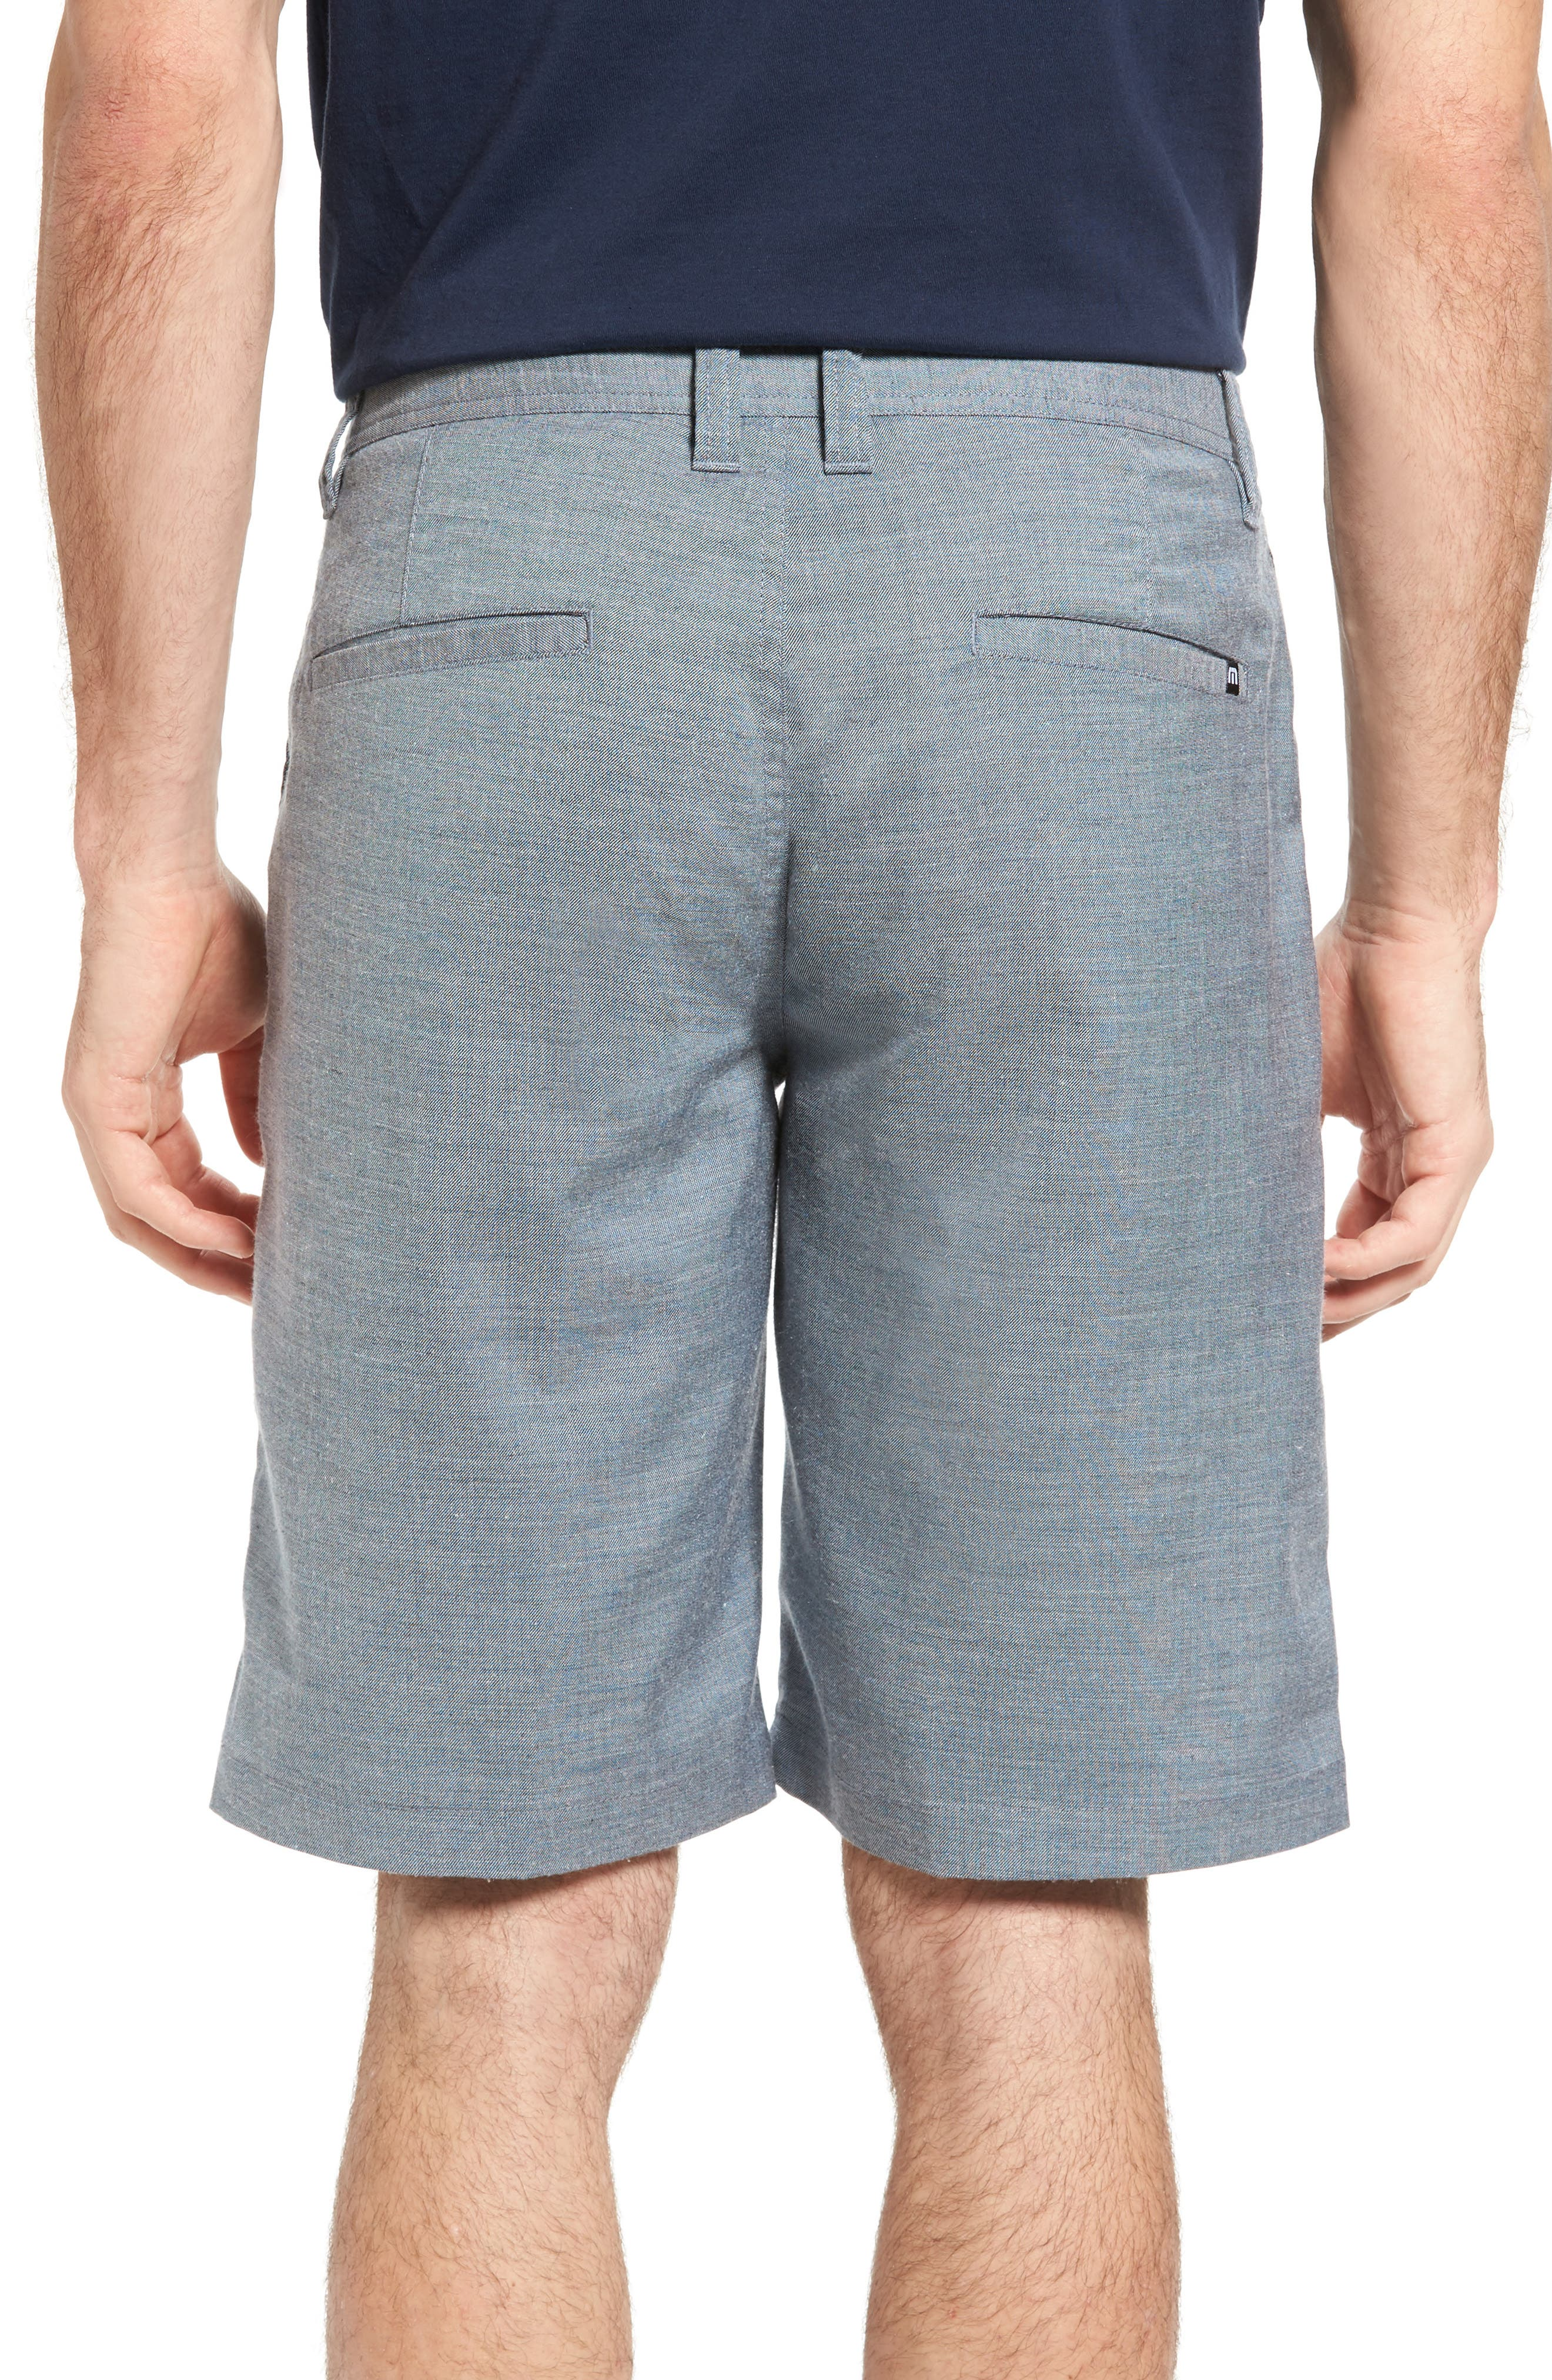 Romers Stretch Shorts,                             Alternate thumbnail 2, color,                             020